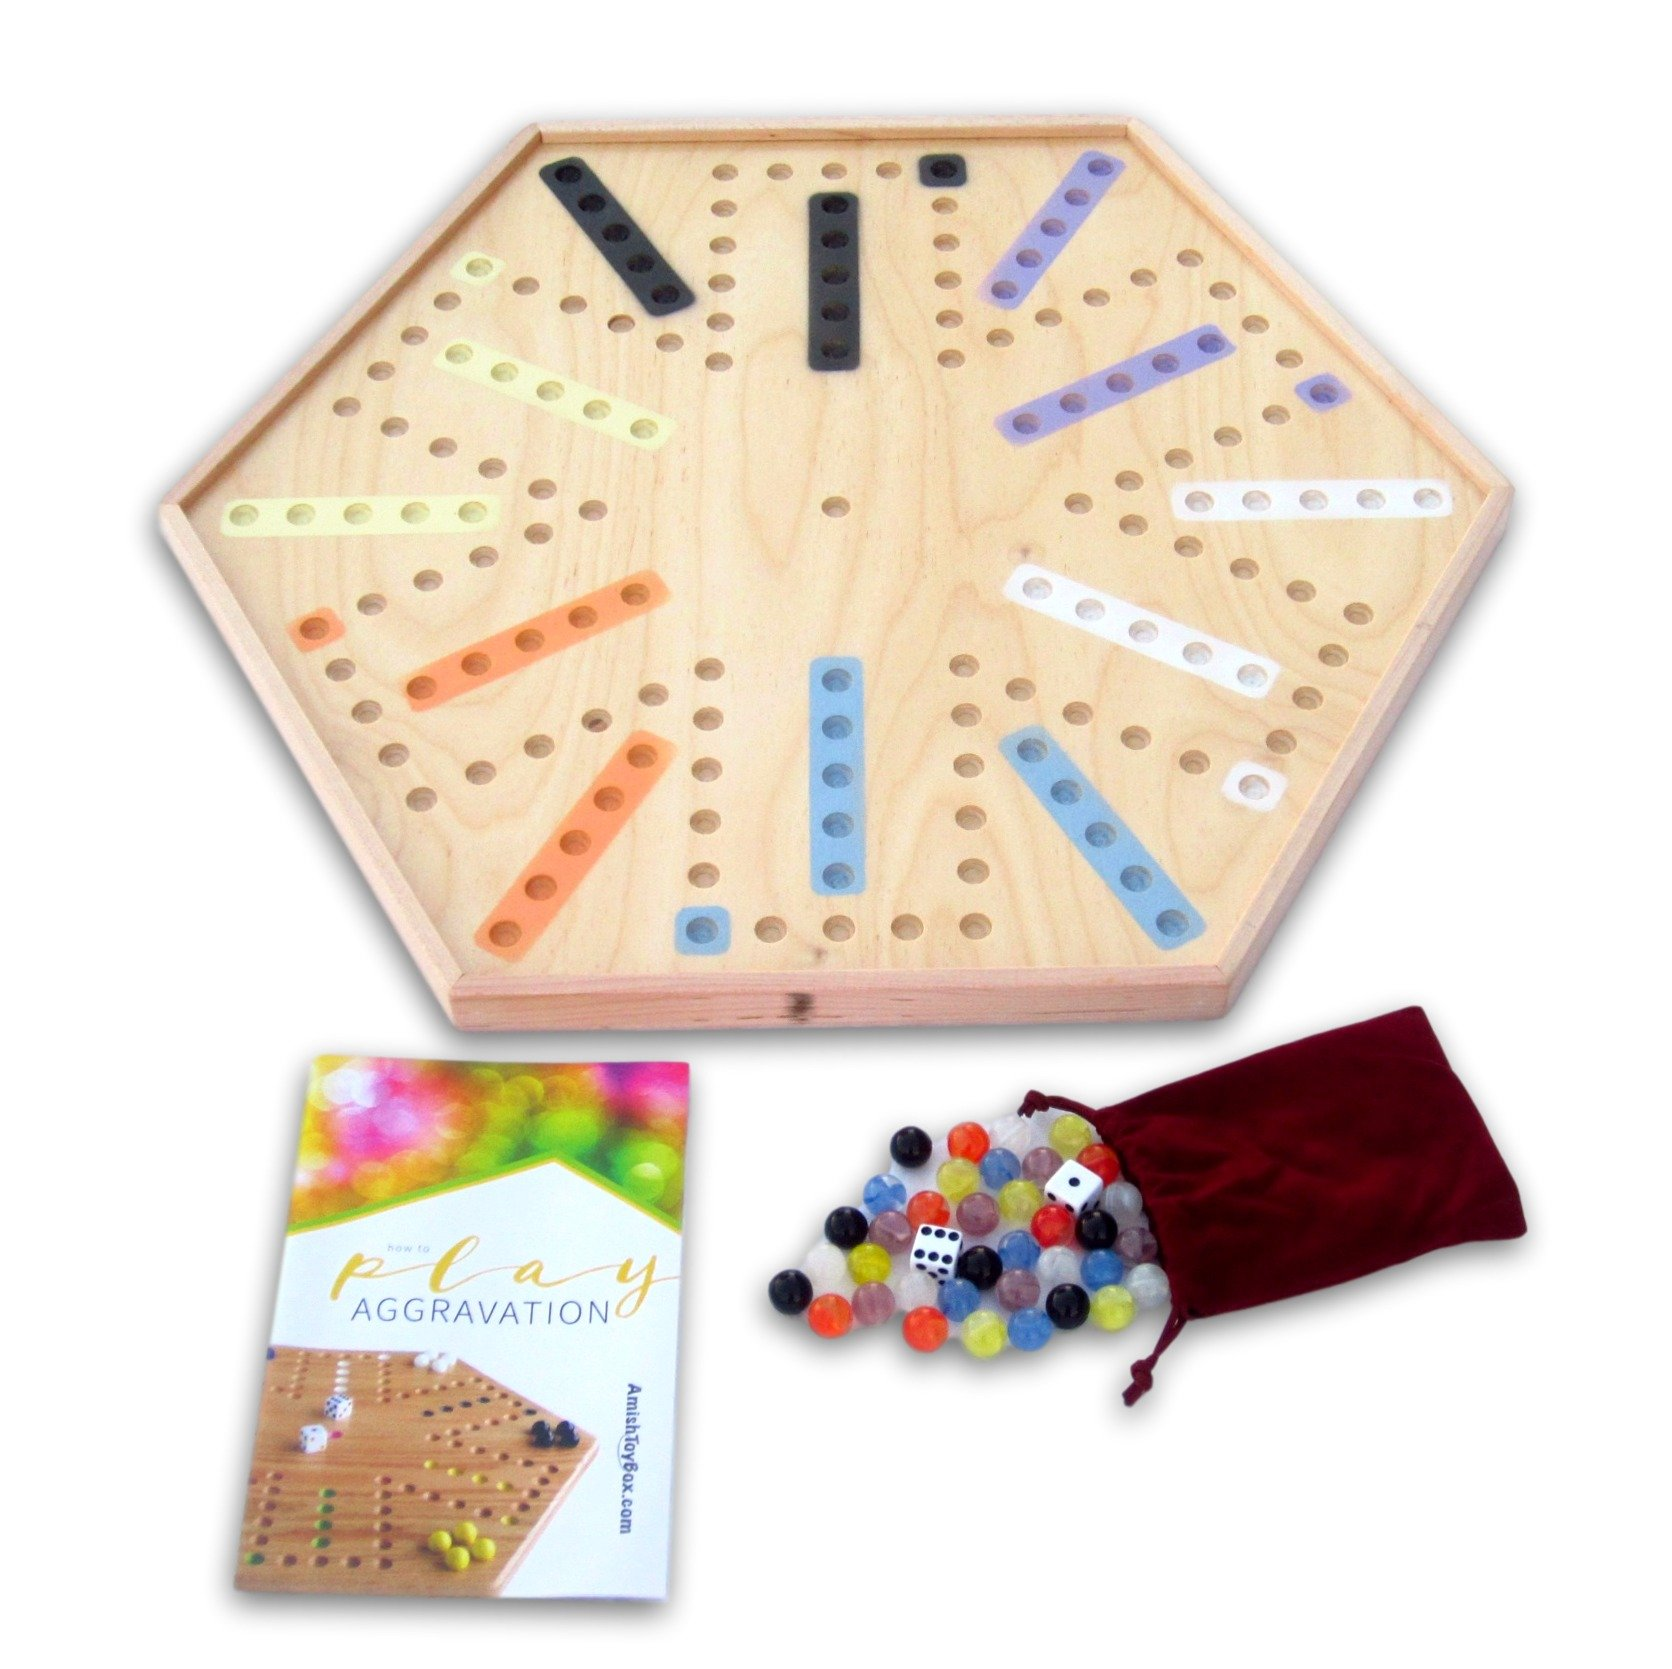 Amish-Made 23'' Wooden Aggravation (Wahoo) Marble Game Board, Double-sided